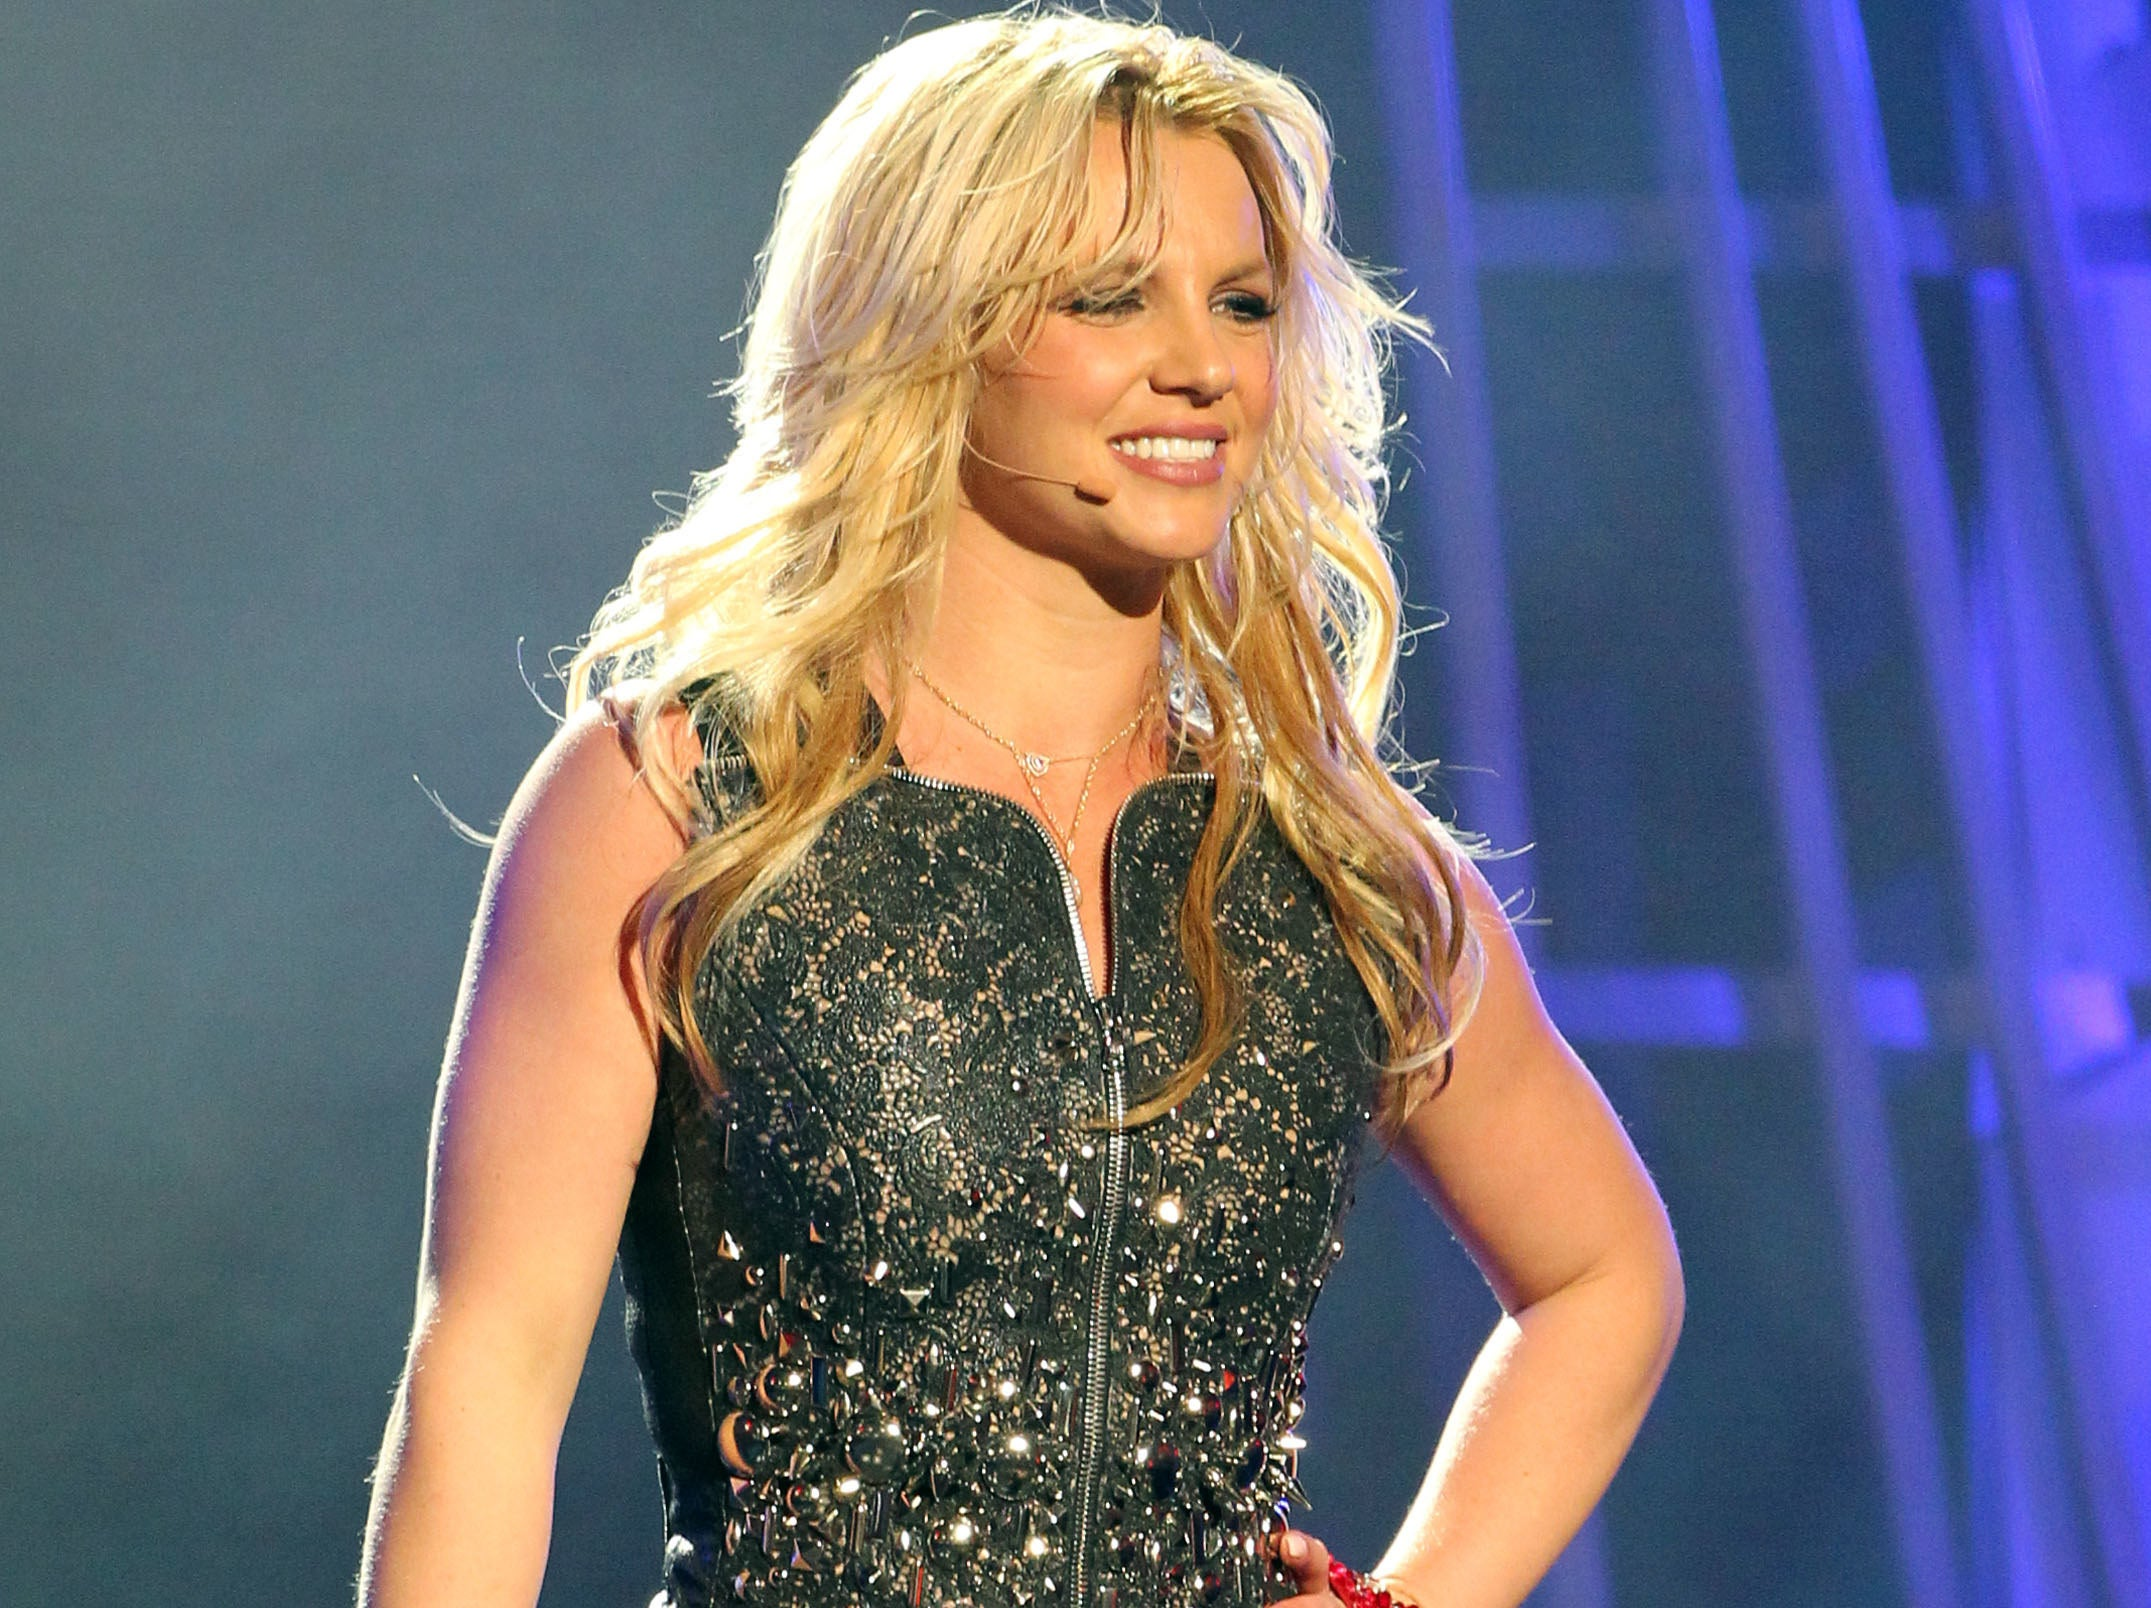 Britney smiles while dancing onstage during a concert